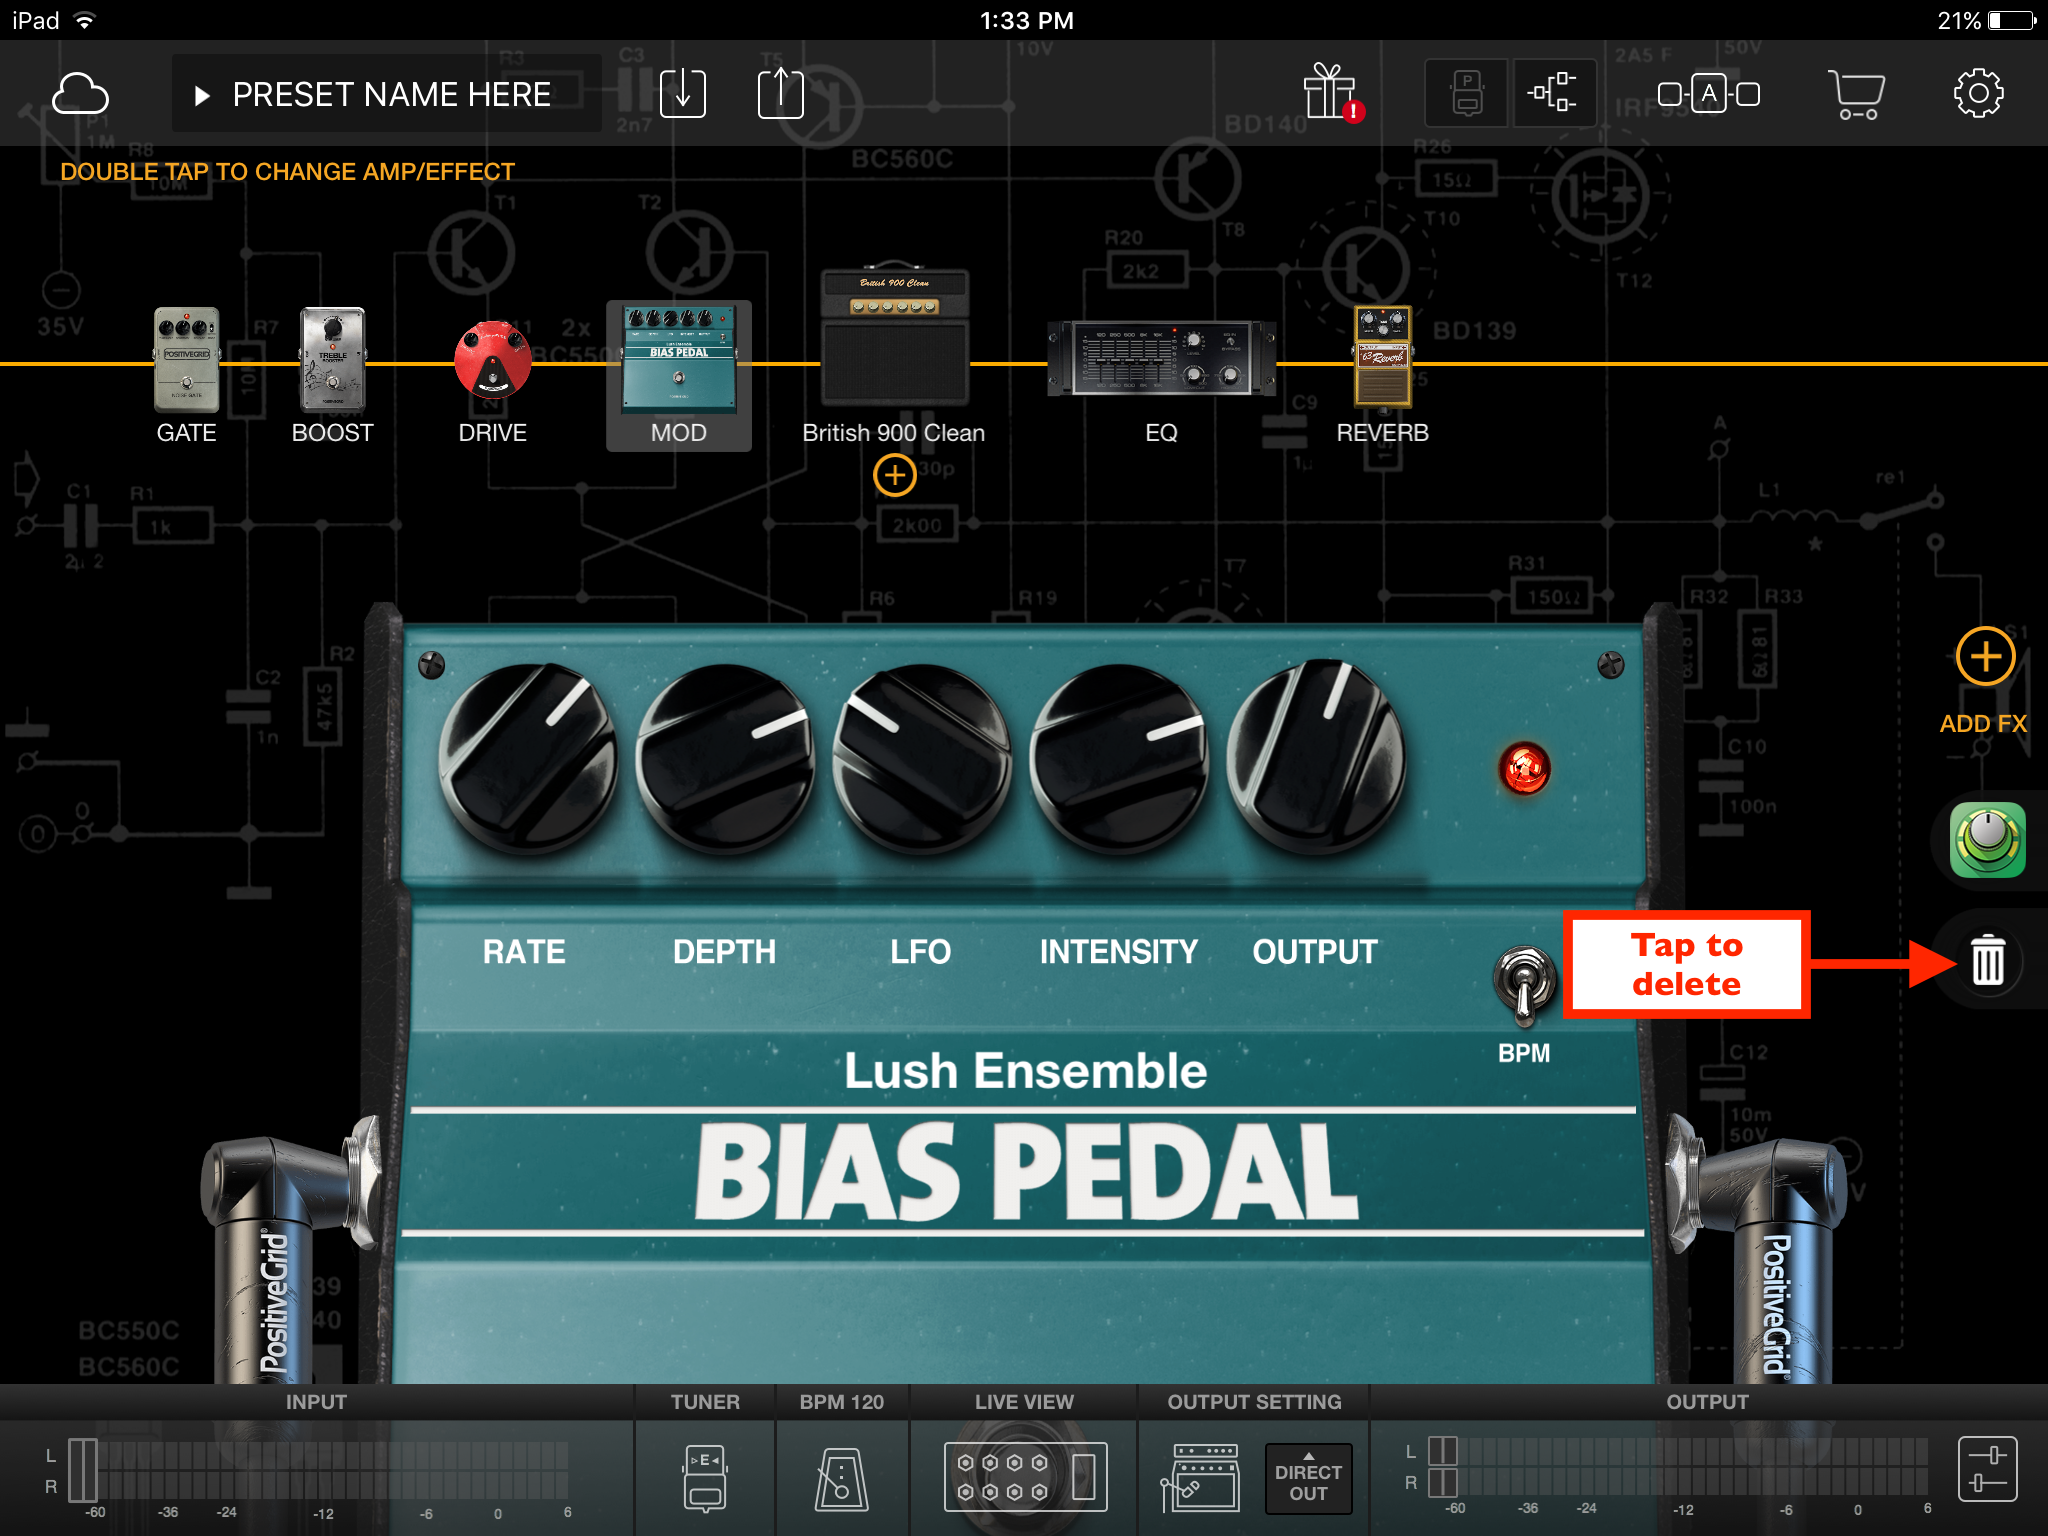 delete_pedal_in_FX.png